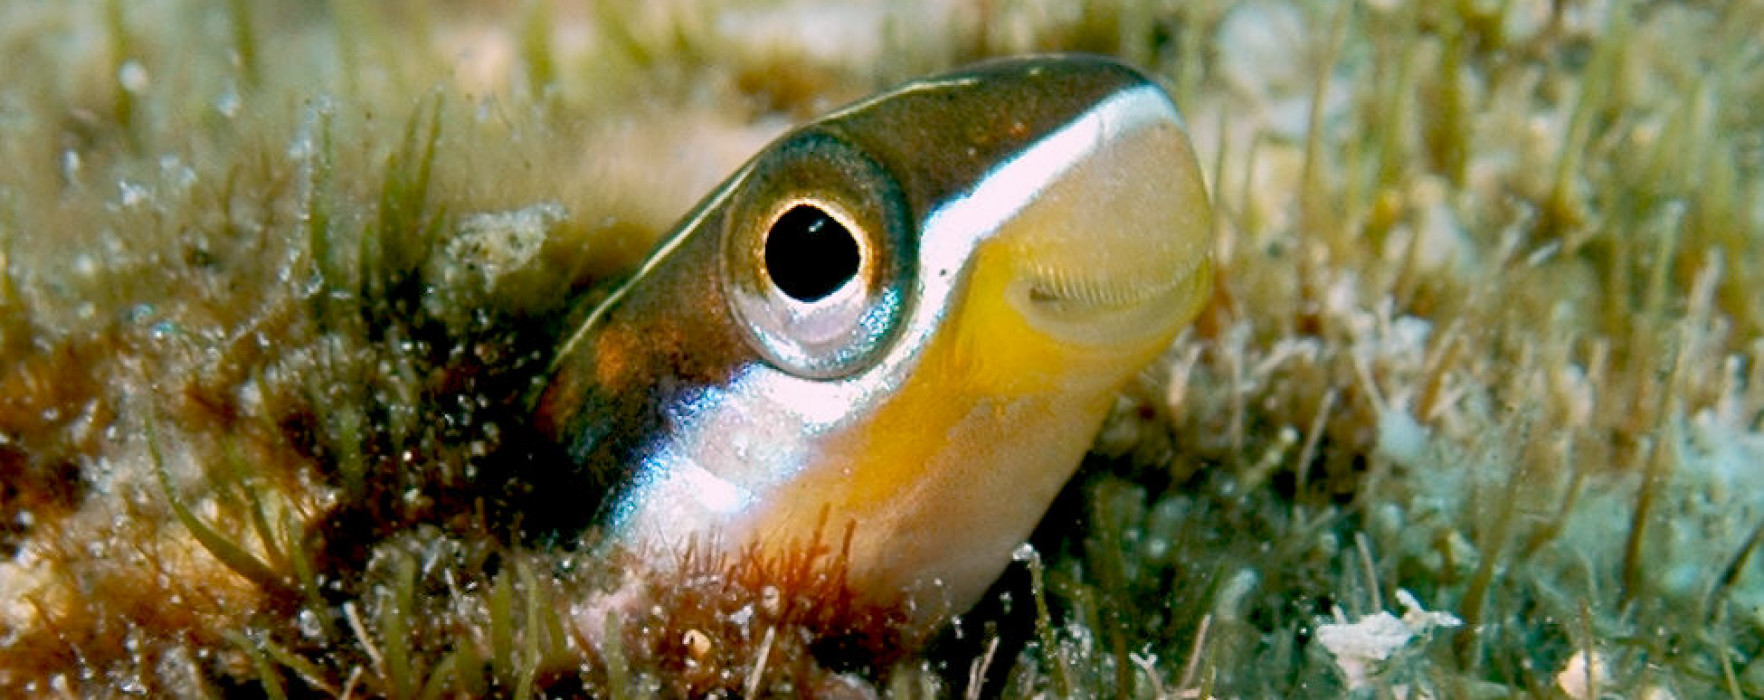 Saber-toothed blenny face wallpaper